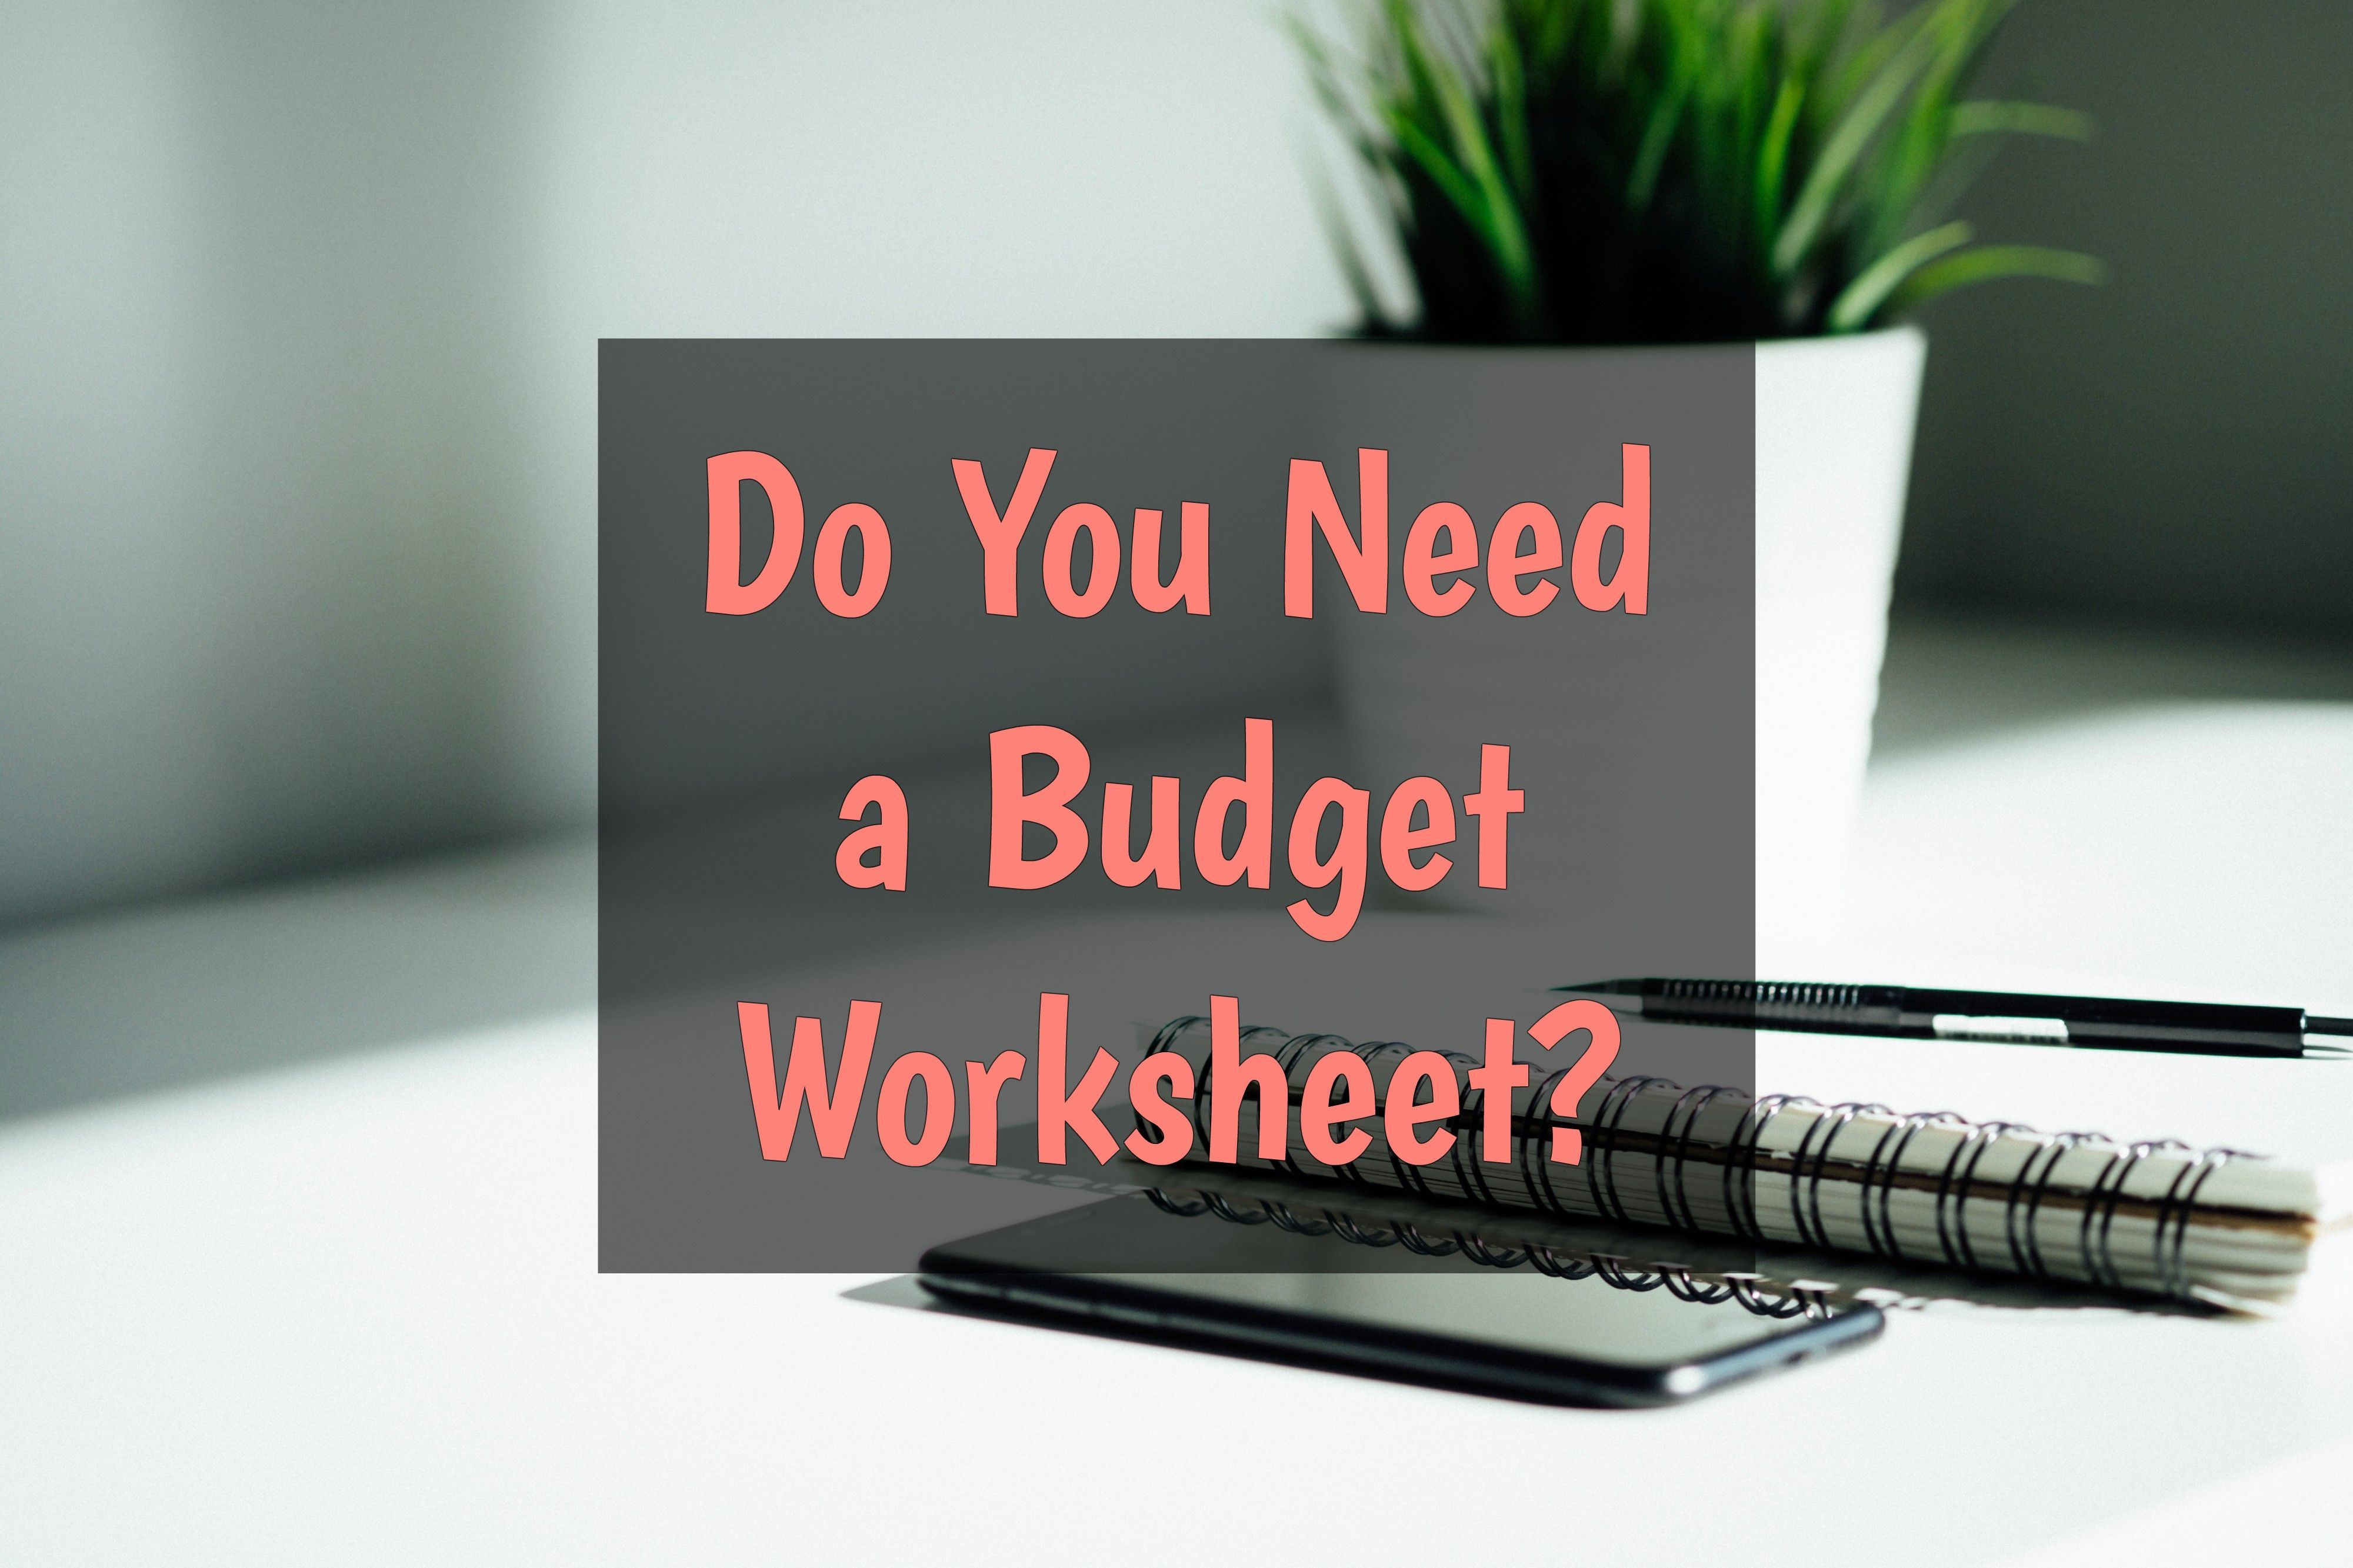 Do You Need A Budget Worksheet